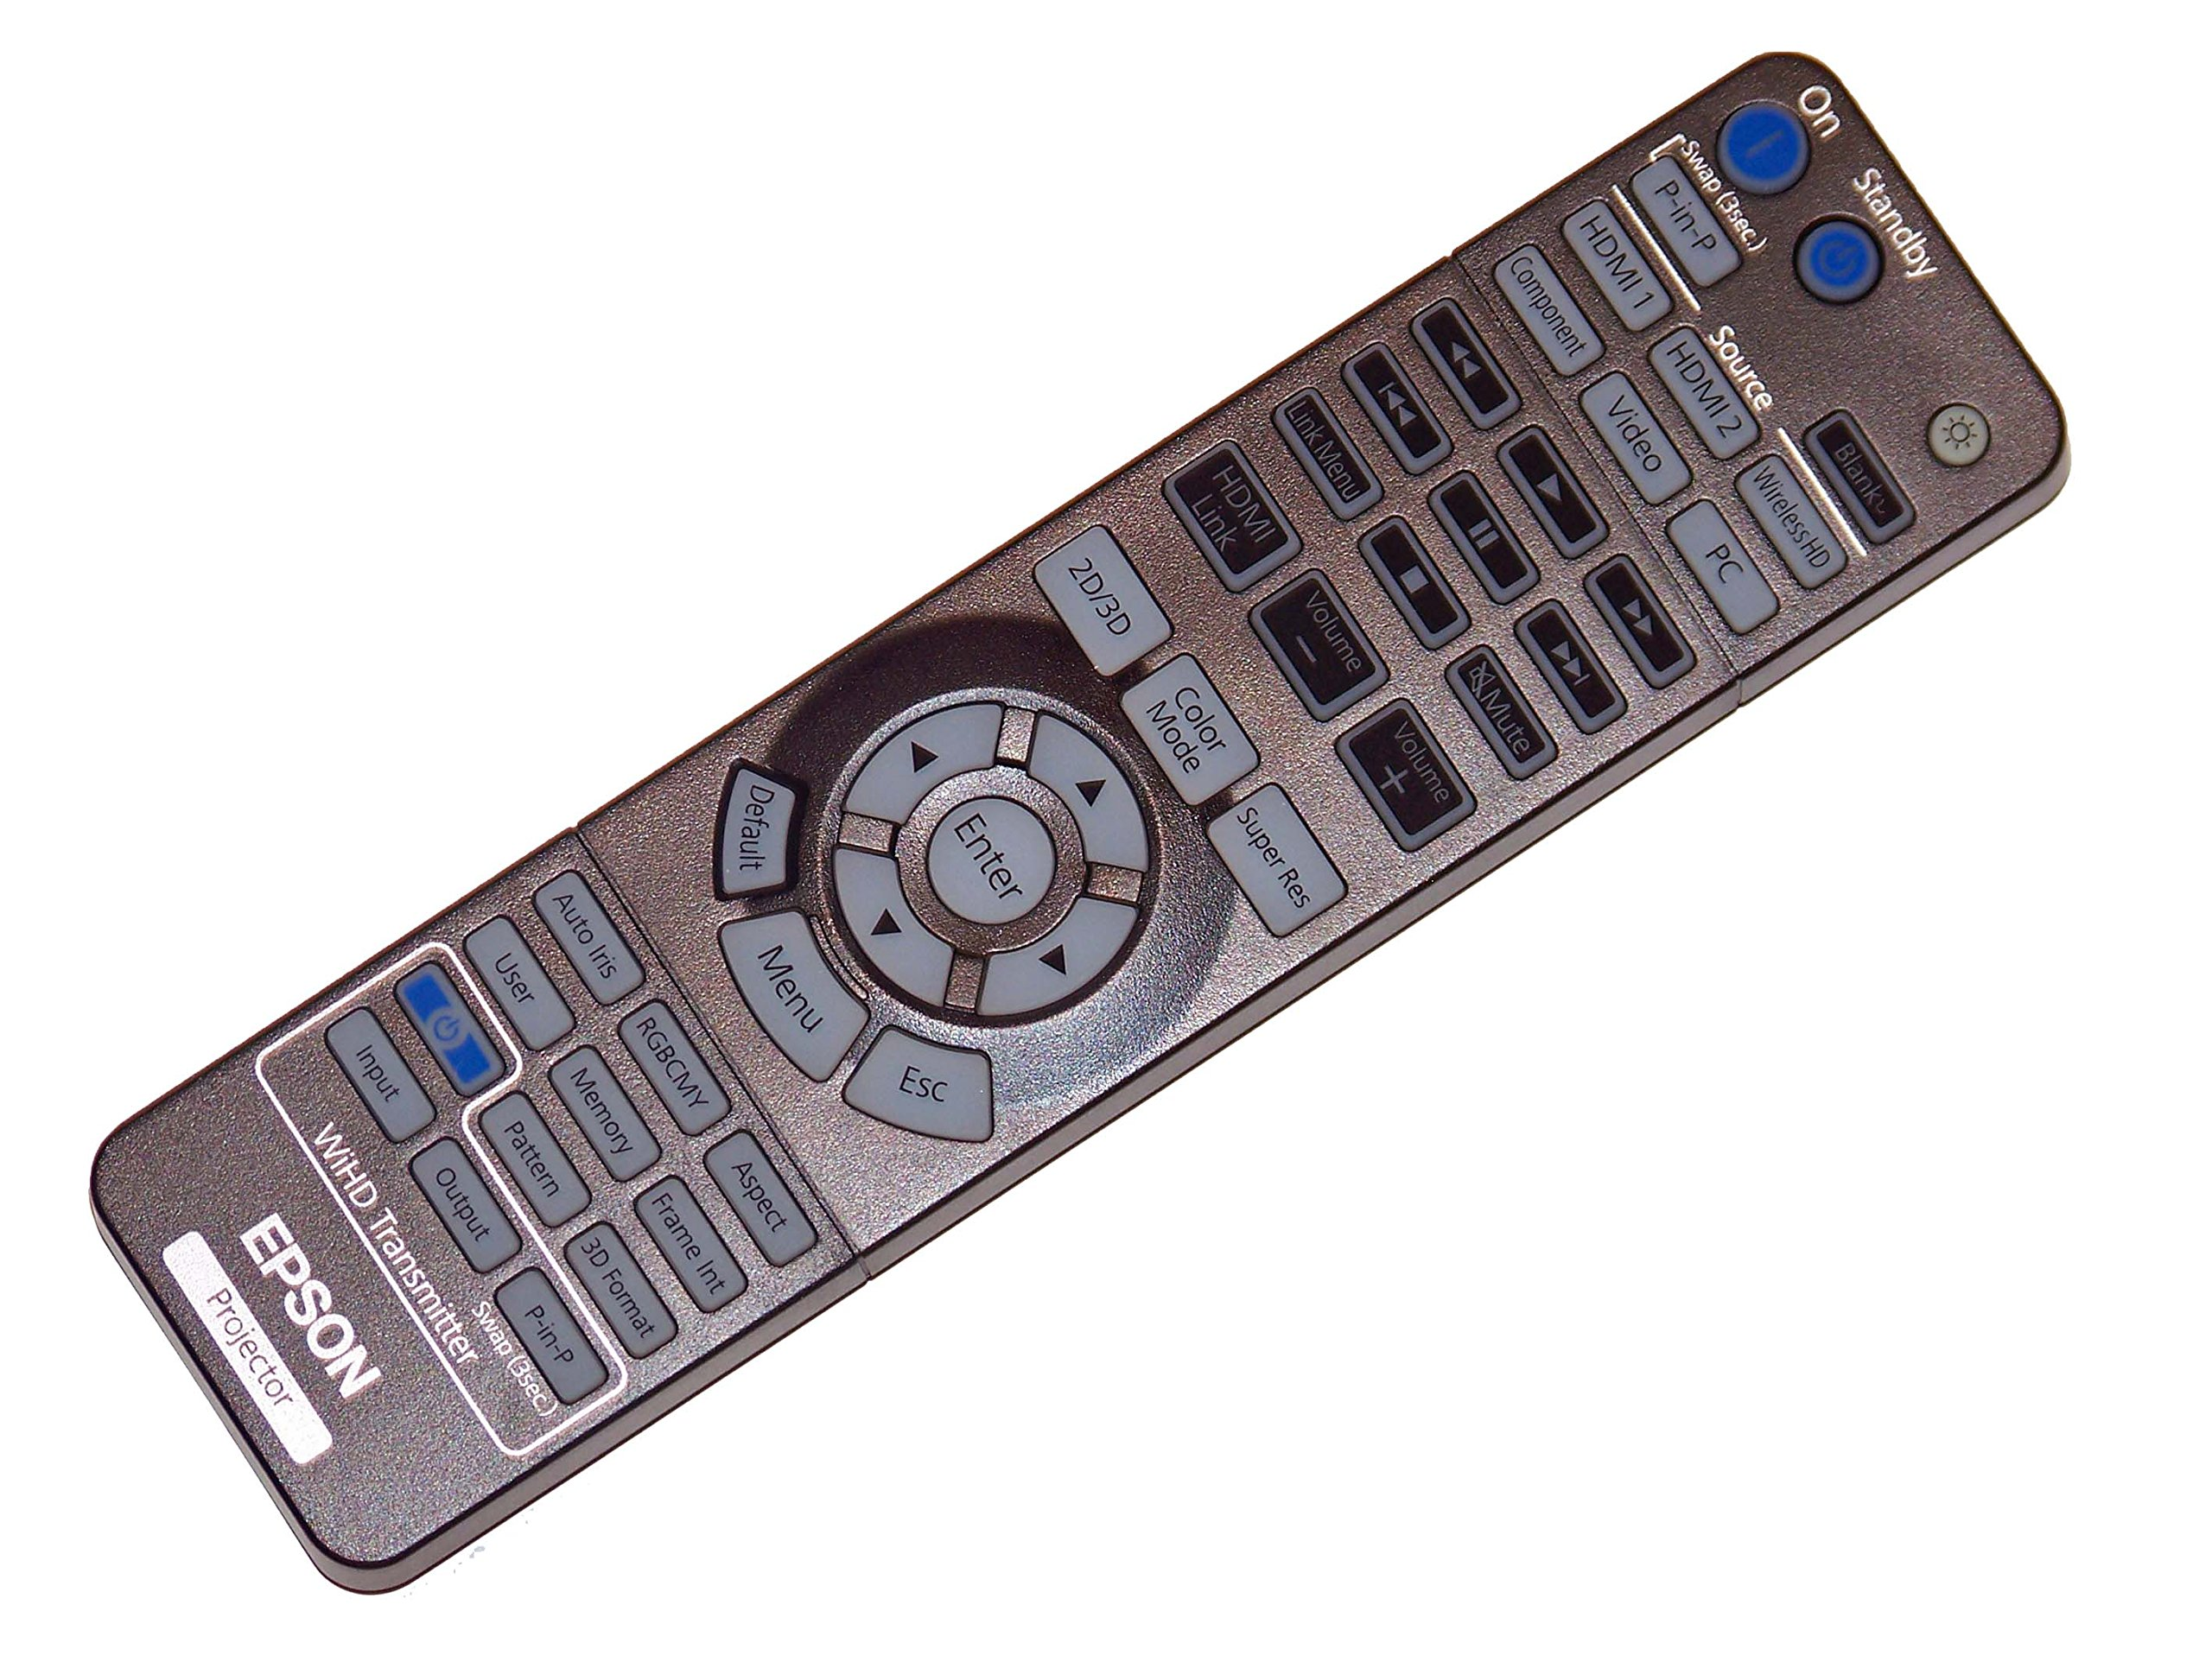 Epson Projector Remote Control: PowerLite Home Cinema 5030UB & PowerLite Home Cinema 5030UBe by Epson